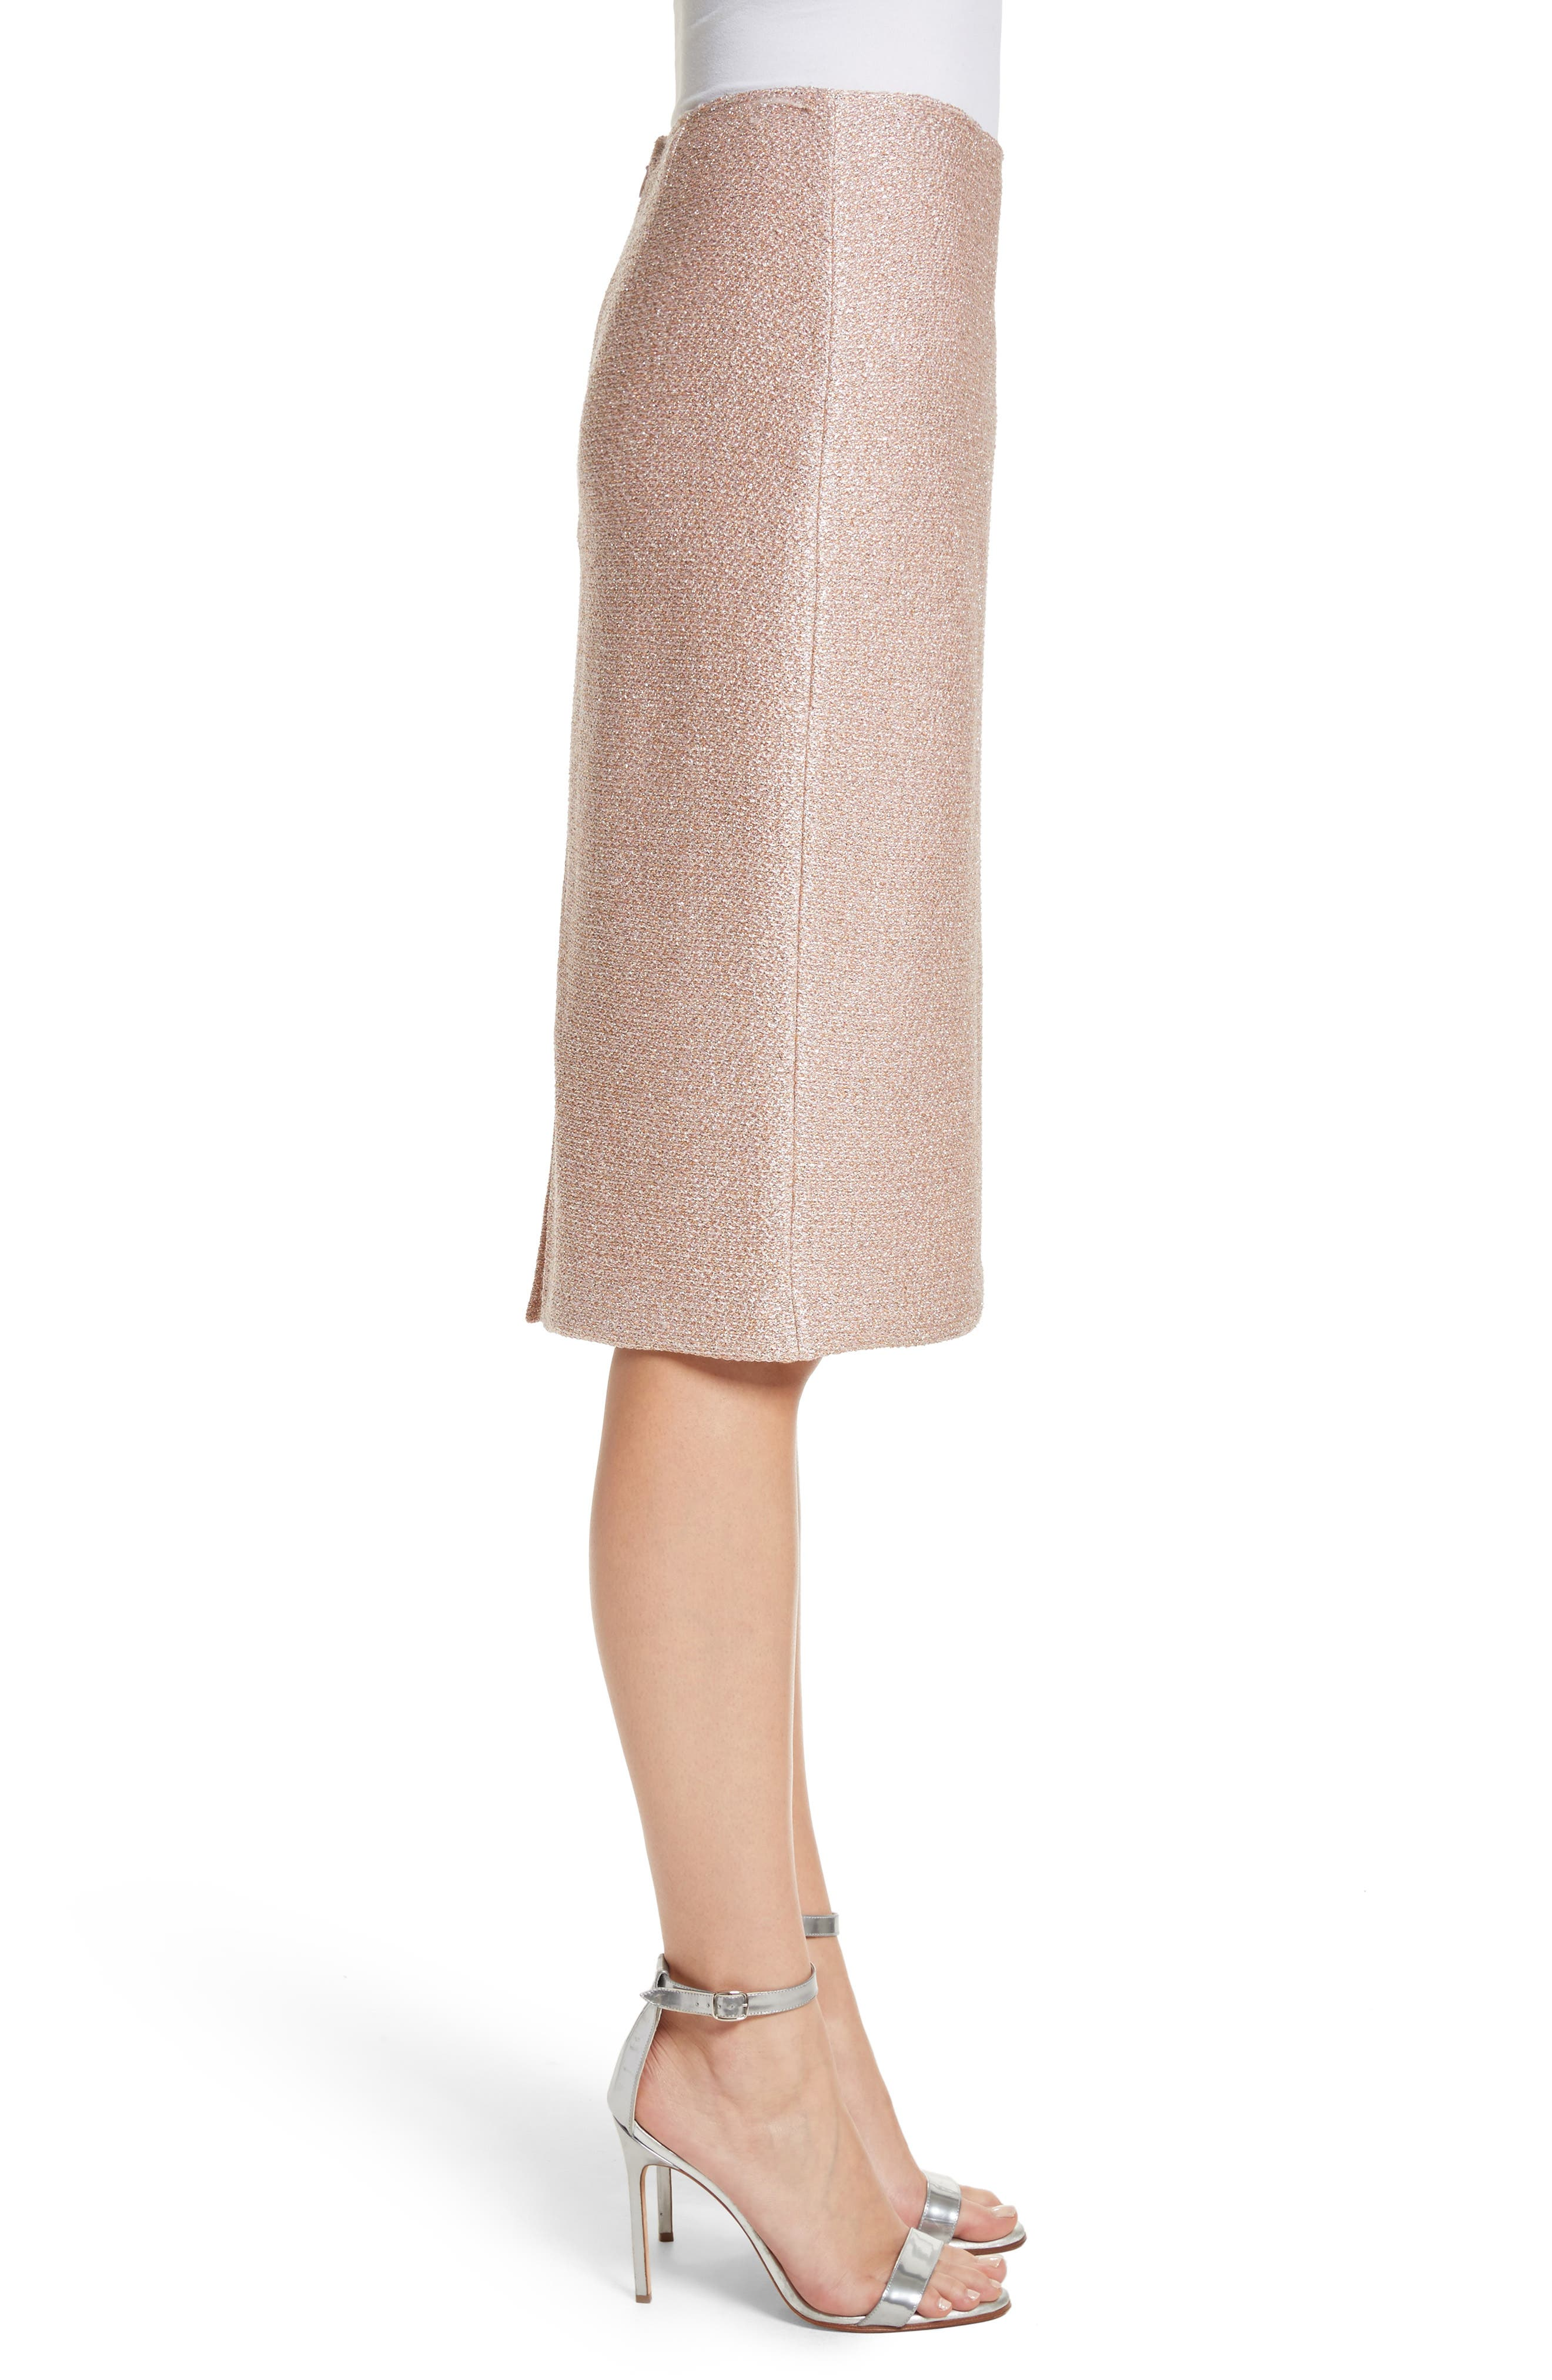 ST. JOHN COLLECTION,                             Frosted Metallic Knit Pencil Skirt,                             Alternate thumbnail 3, color,                             660